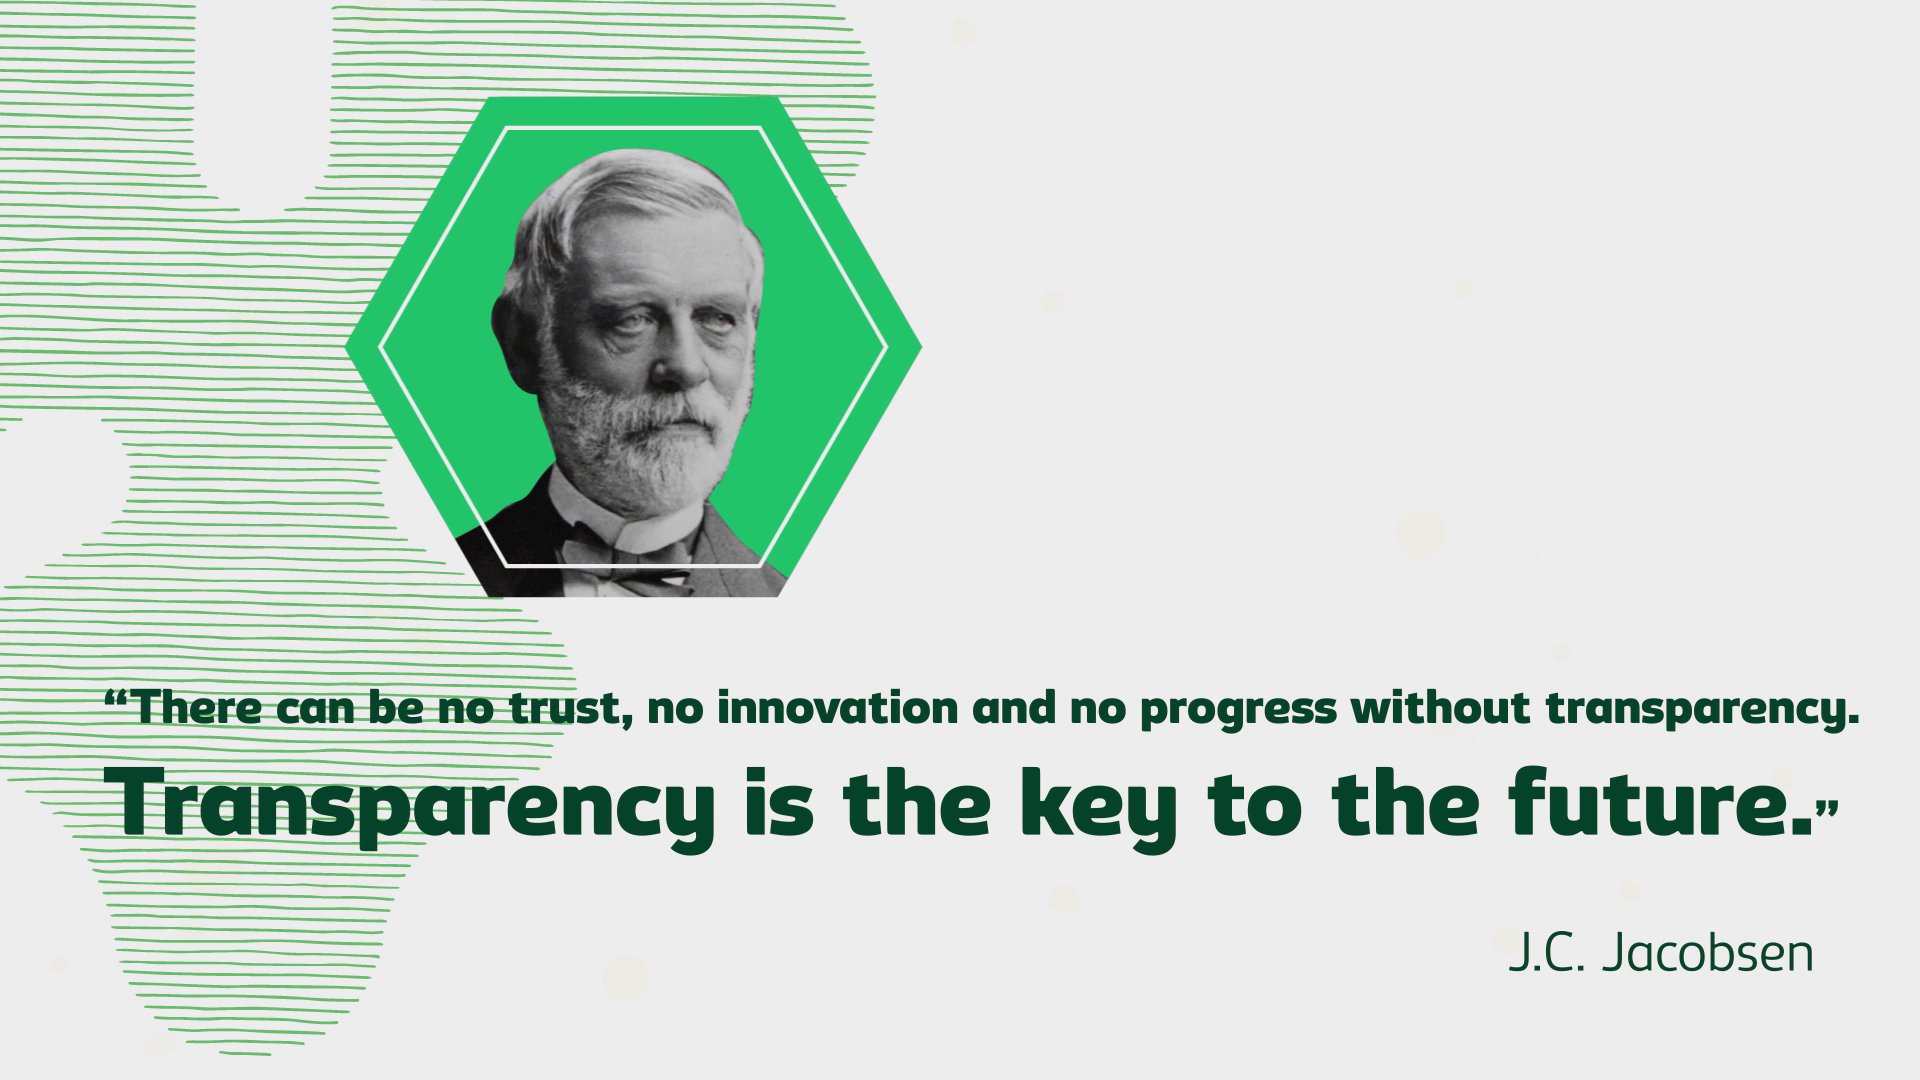 Transparency is the key to the future - J.C. Jacobsen